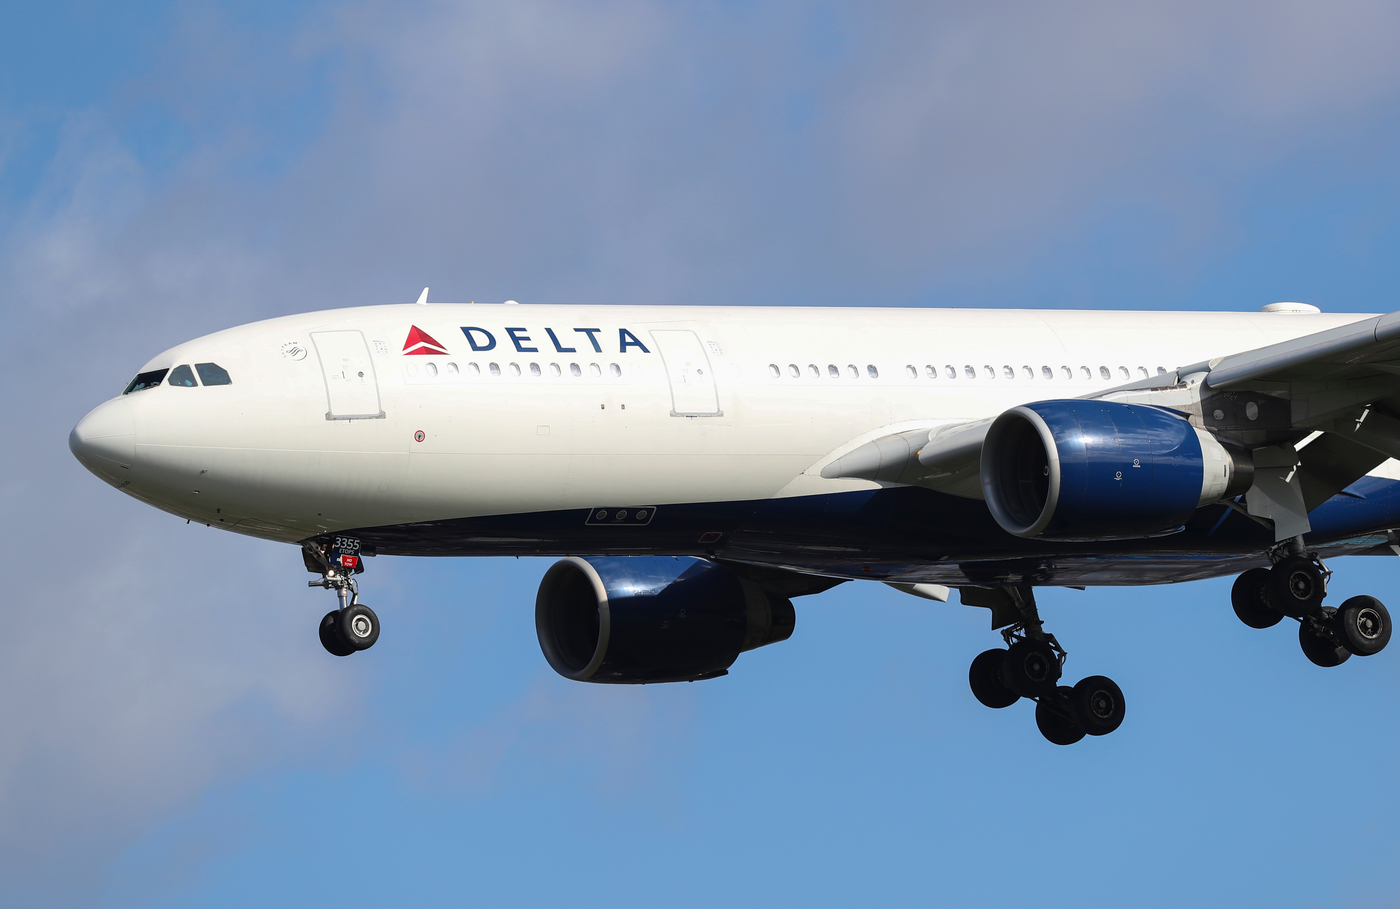 Delta S Black Friday Flight Deals Are Crazy This Year And We Guarantee They Ll Go Fast Bgr